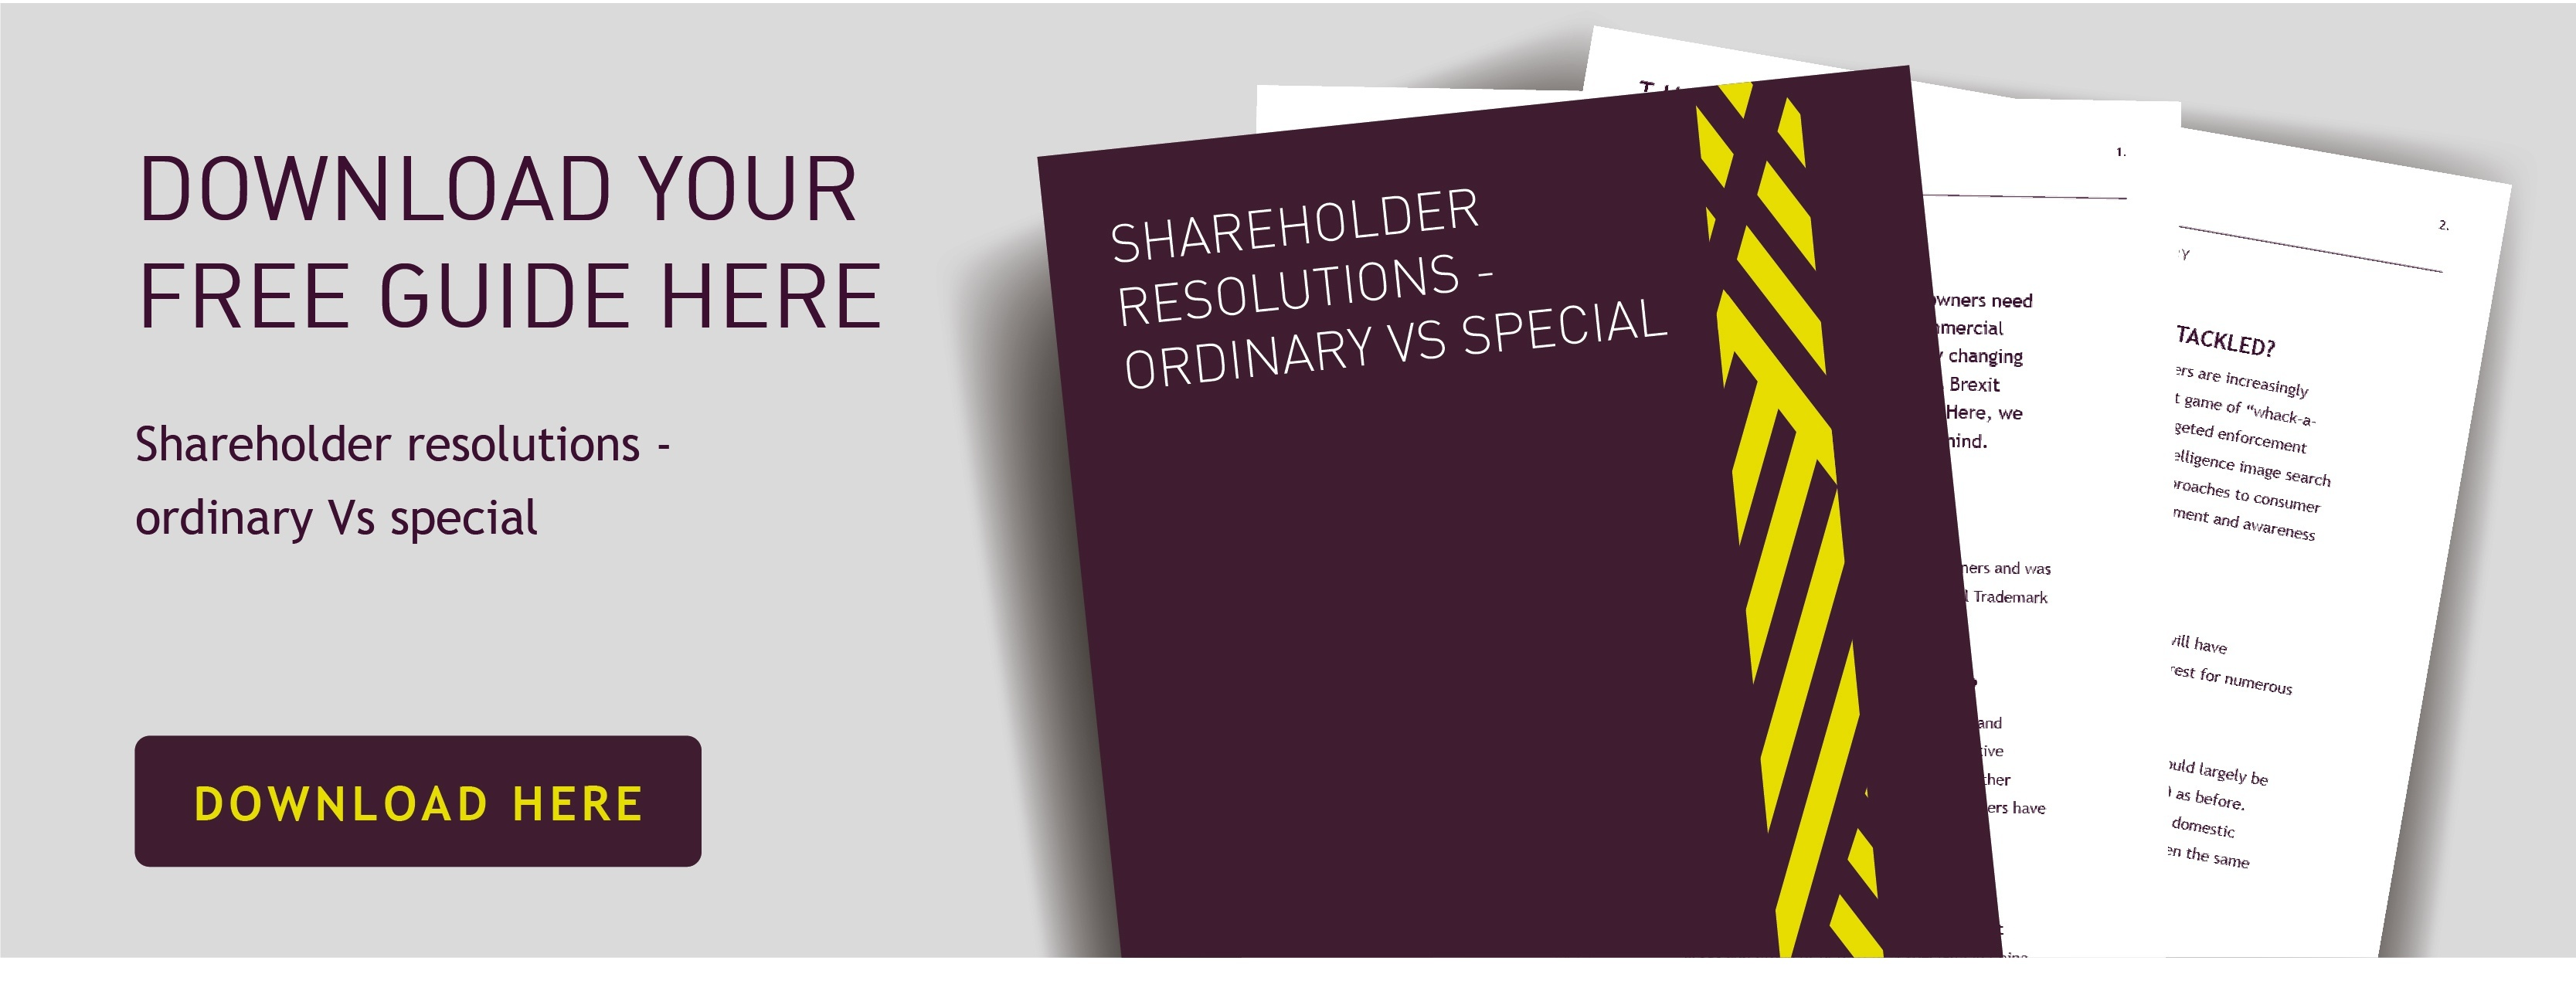 Shareholder Resolutions - Ordinary Vs Special